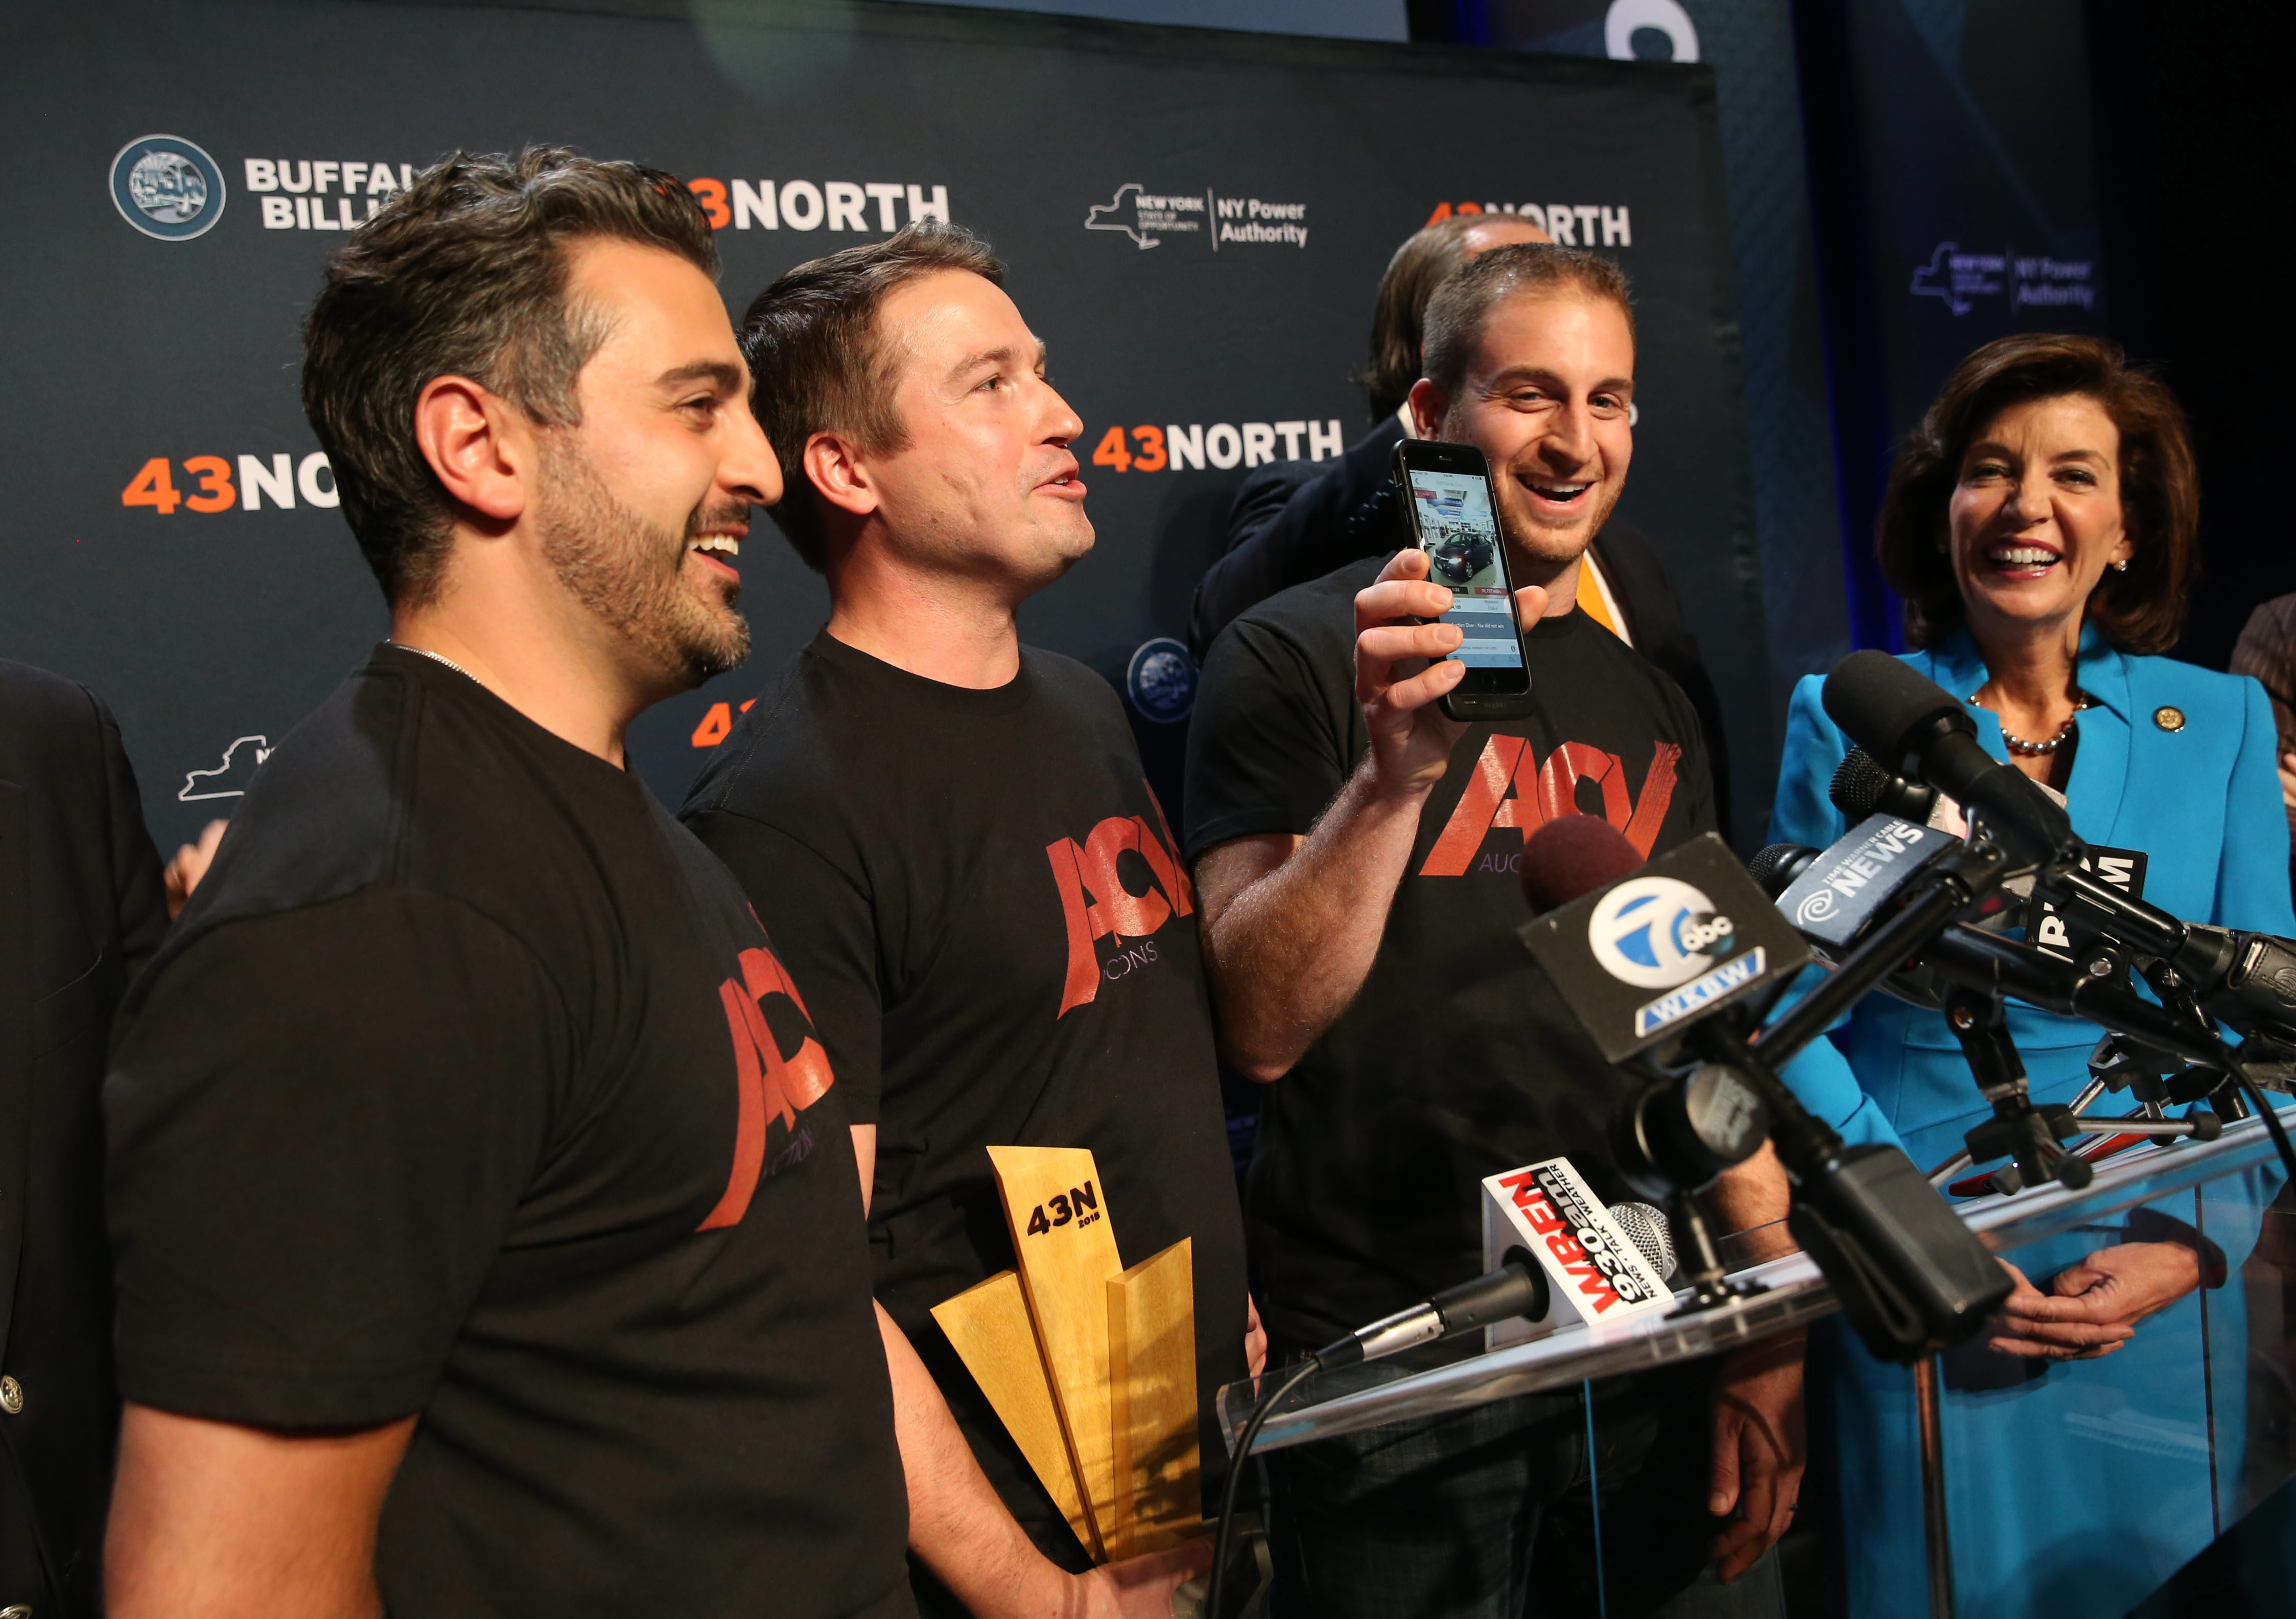 ACV Auctions, which won the $1 million grand prize in the 43North competition in 2015, has secured $15 million in new venture capital funding.  From left are Jack Greco, Dan Magnuszewski and Joe NIeman.    On far right is Lt. Governor Kathy Hochul. (Sharon Cantillon/Buffalo News file photo)